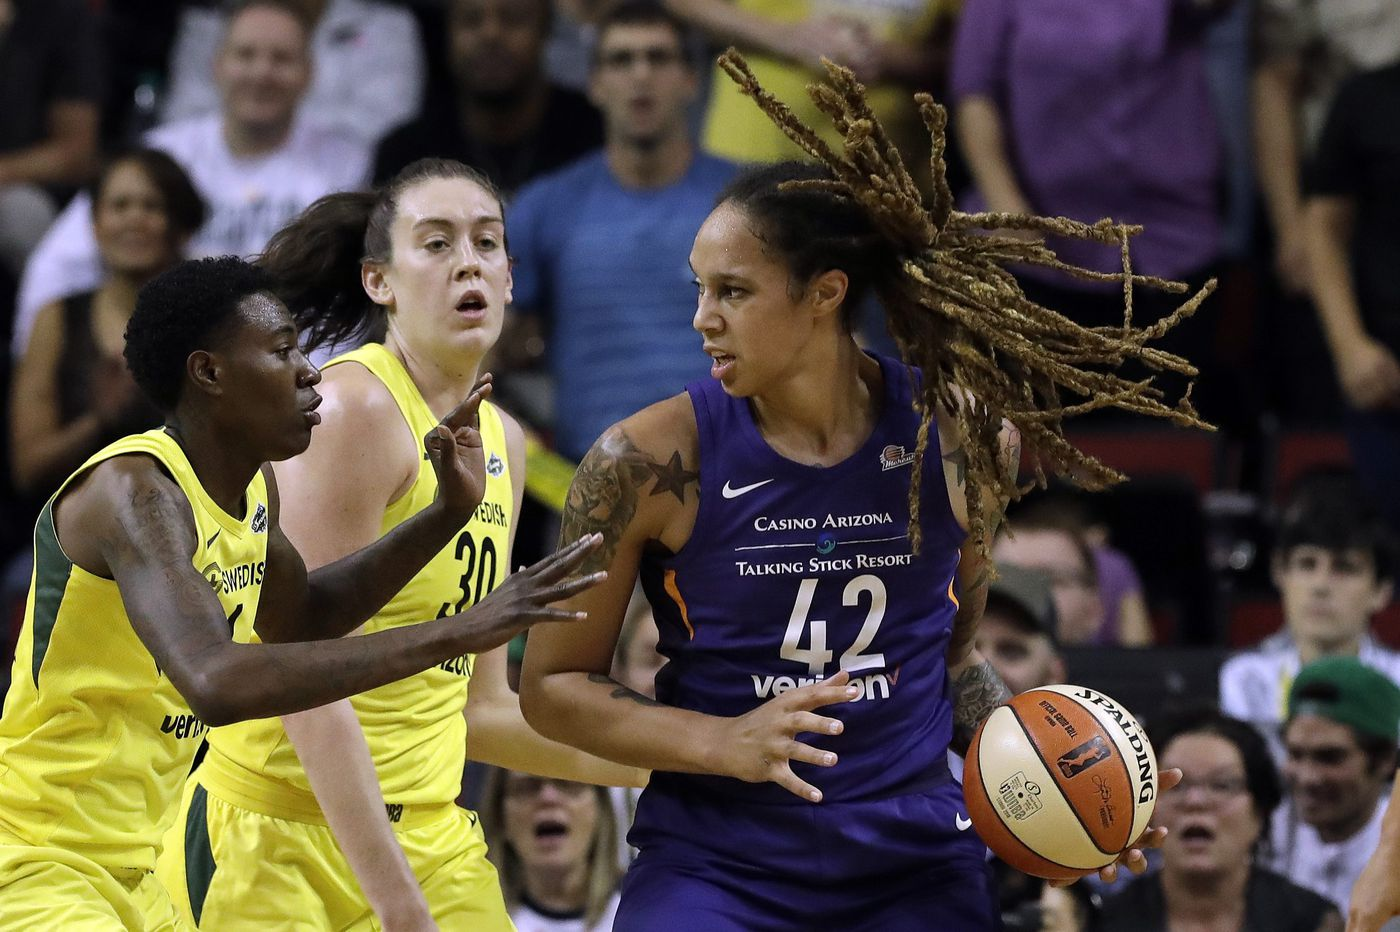 WNBA players want to be paid more, but can the league accommodate them?